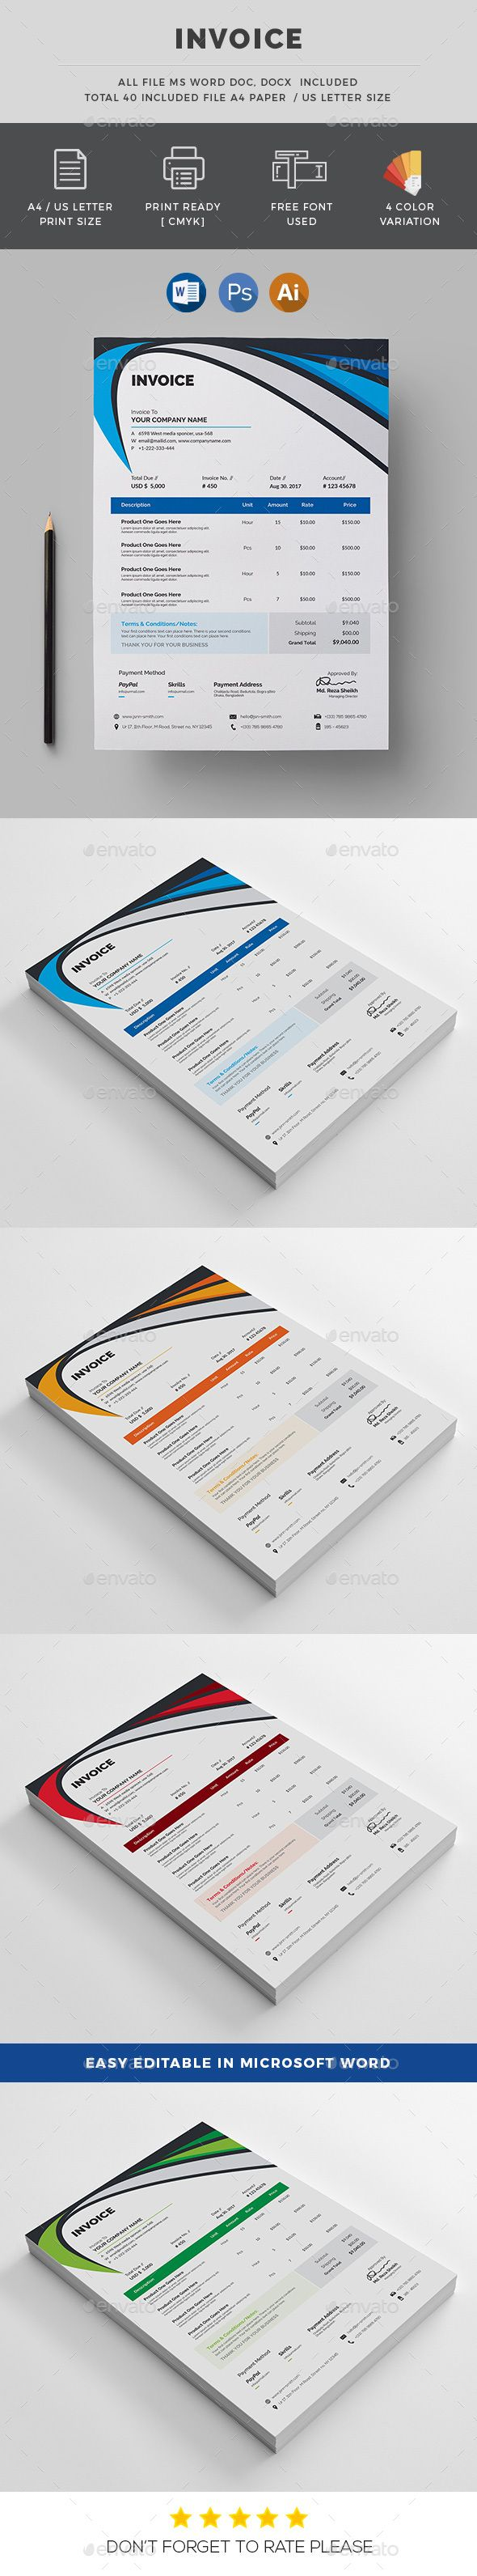 proposal template for word%0A  Corporate Invoice Template   Business  Invoice  Stationery Print  Template   Design